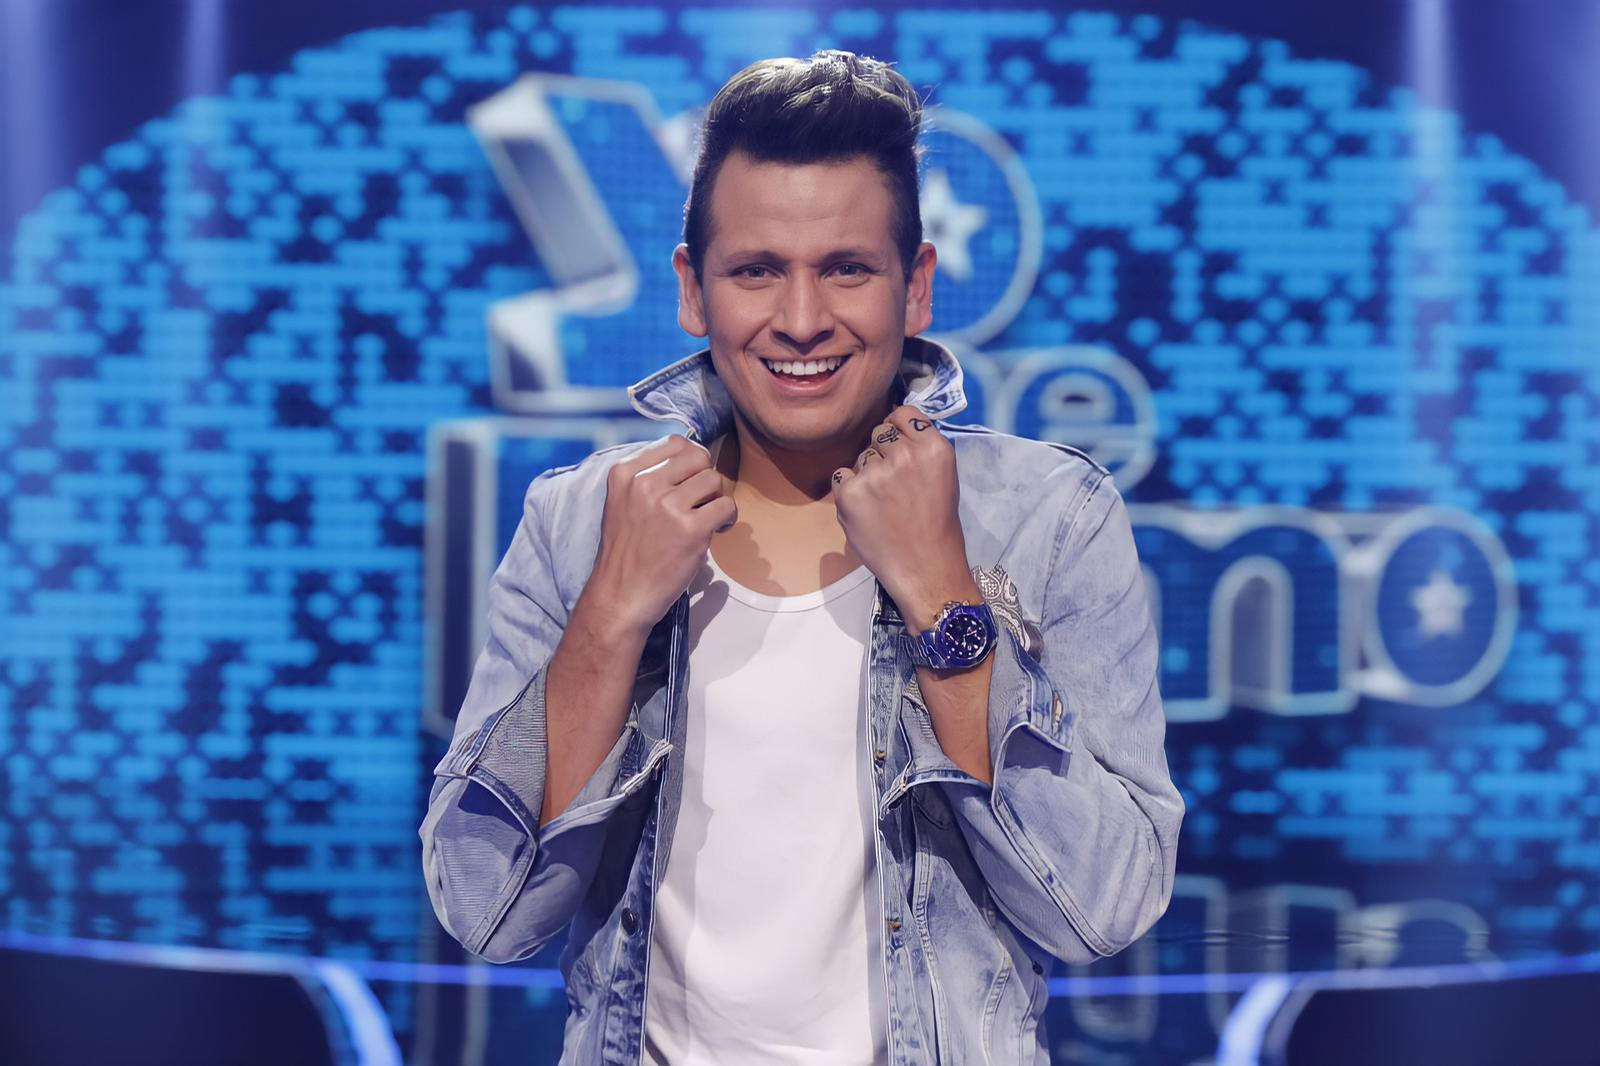 Get Personalized Video Messages from Carlos Manjarres on Celevideos